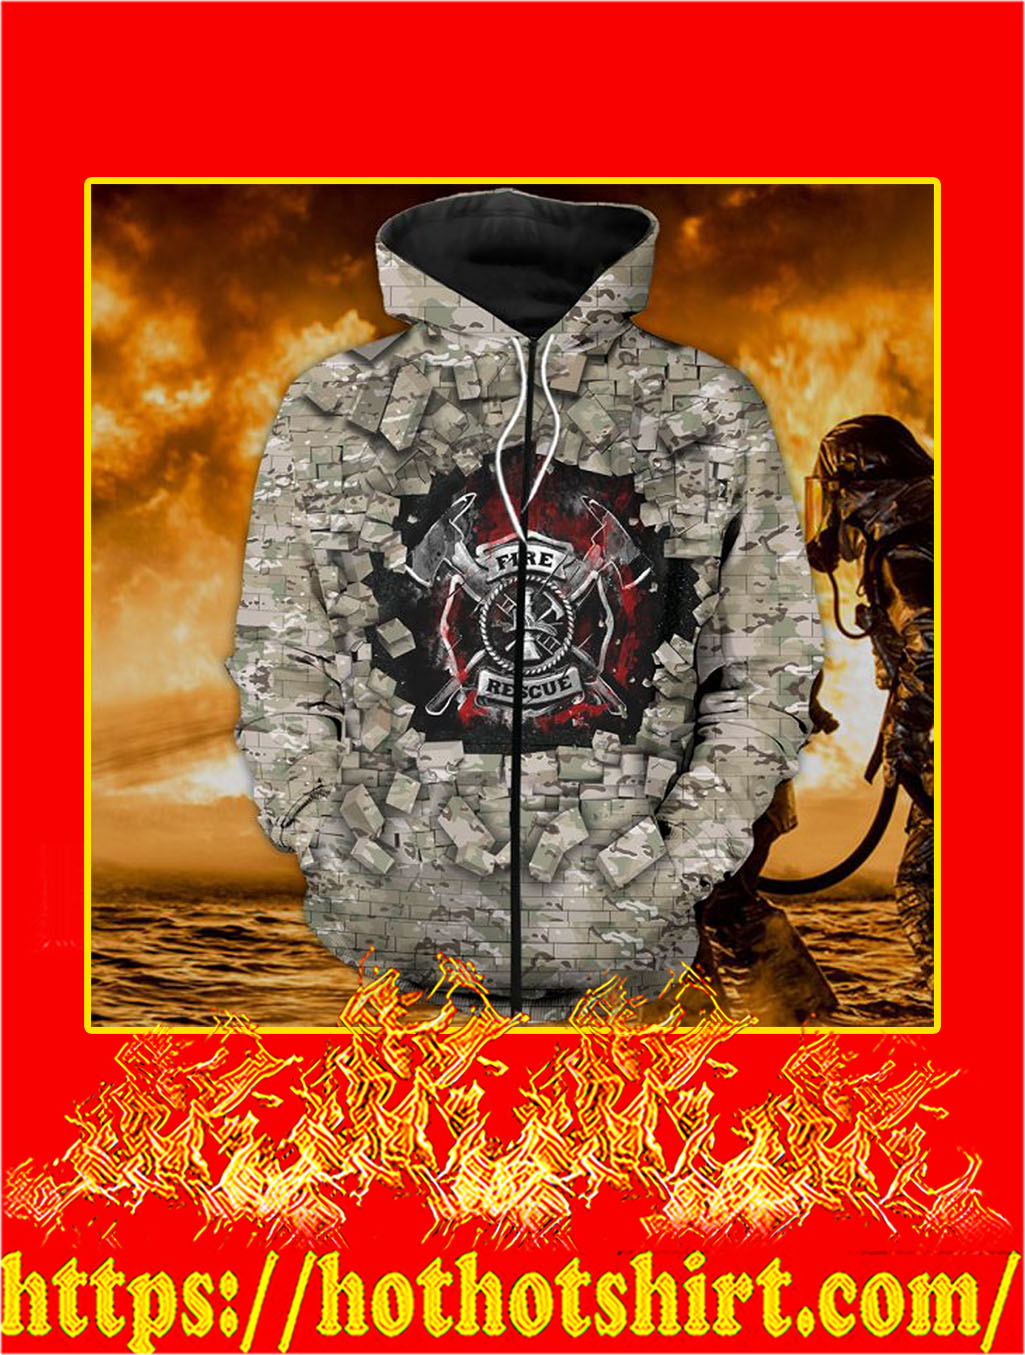 3D Printed Firefighter Camo Wall Clothing Zip Hoodie